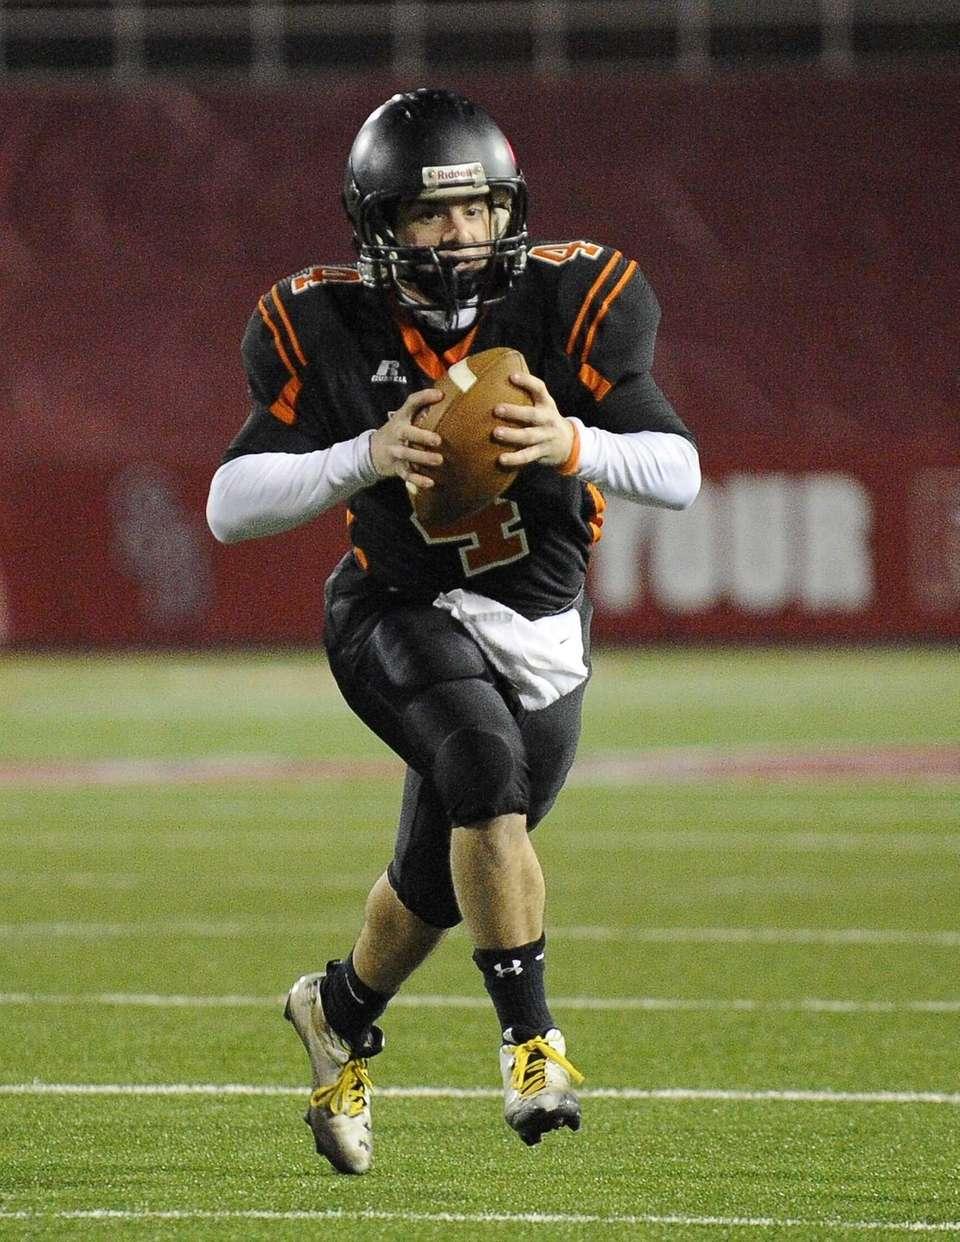 Babylon quarterback Nick Santorelli runs the ball against